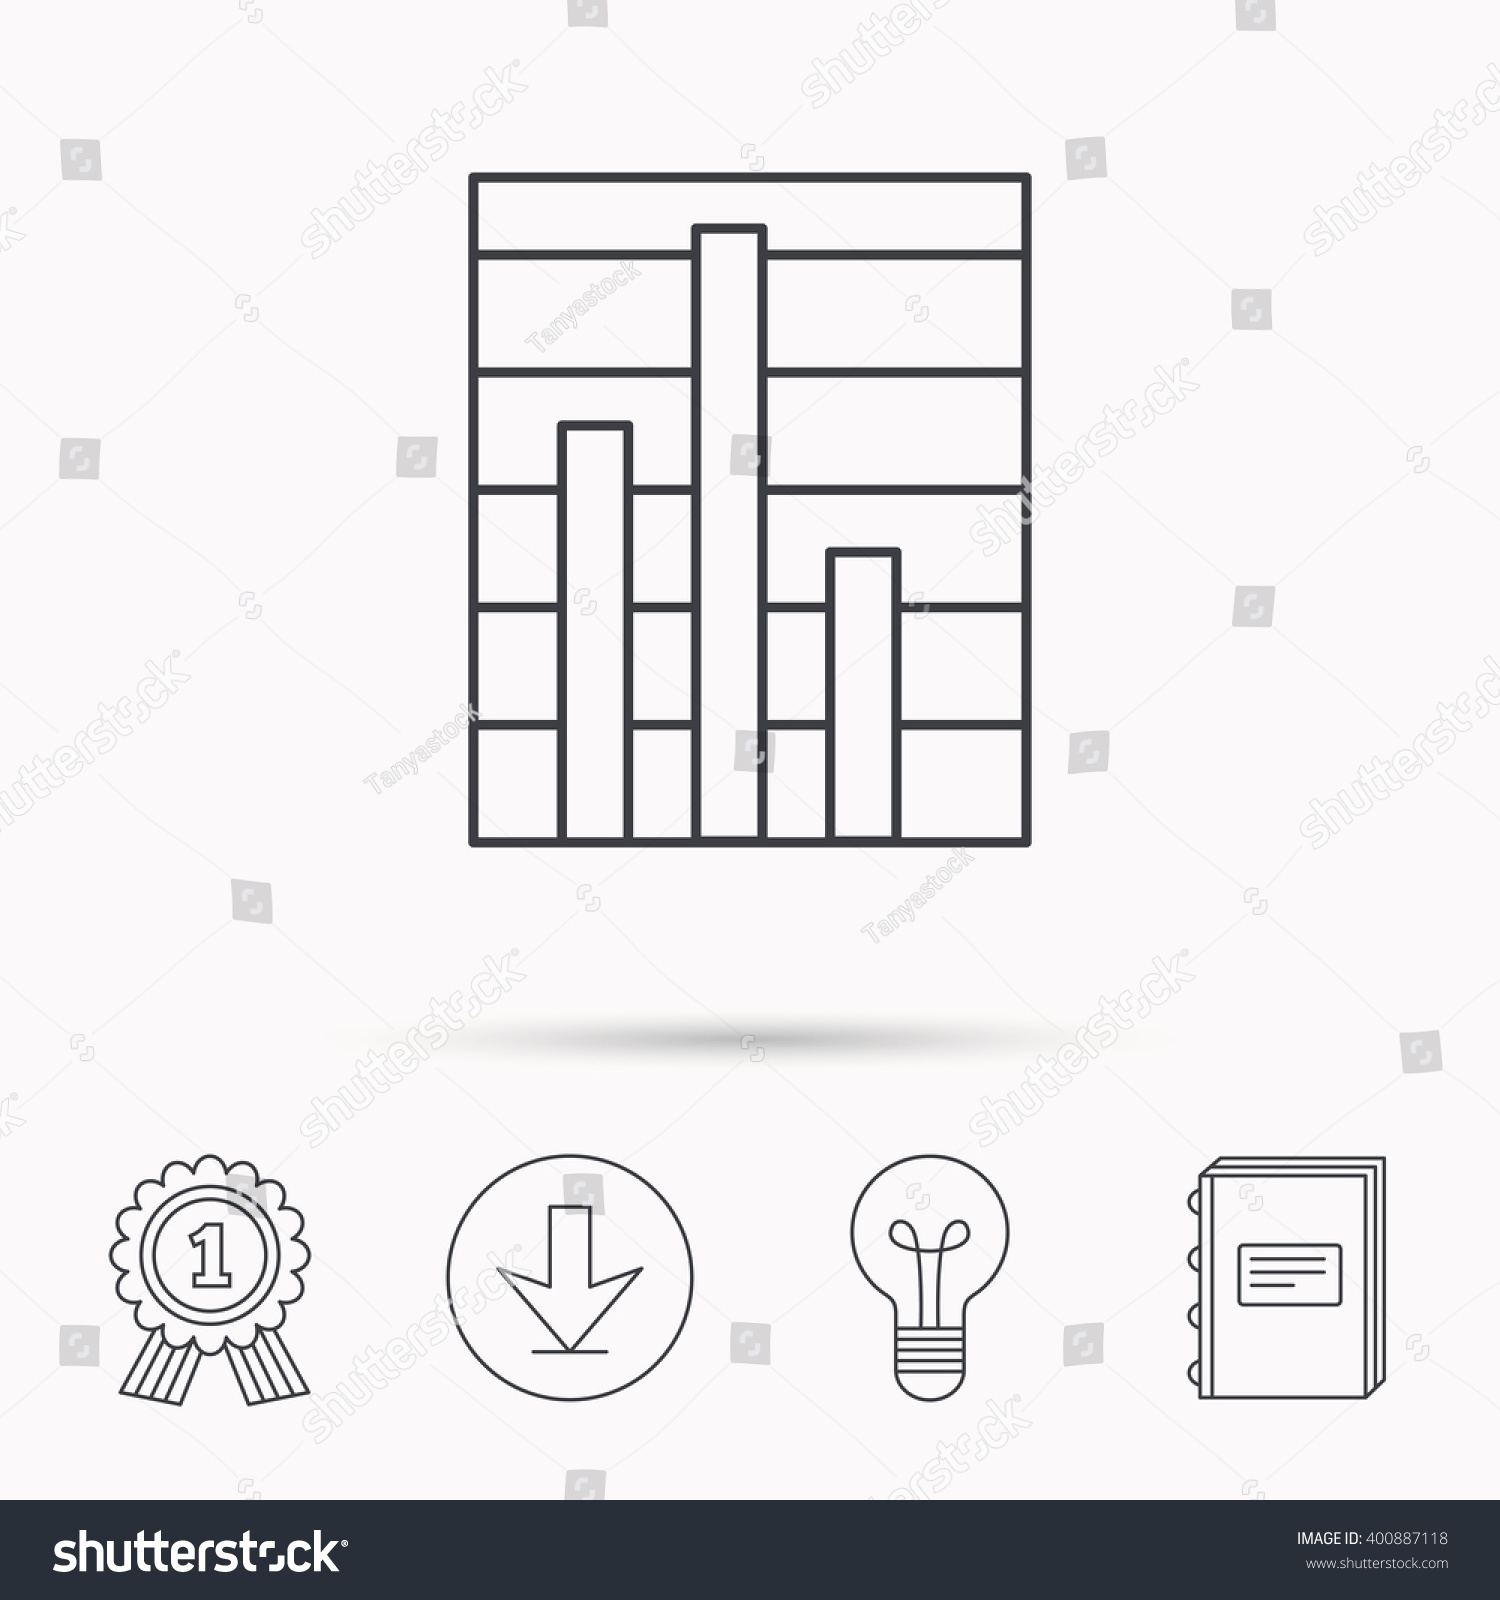 Chart icon graph diagram sign demand stock vector 400887118 chart icon graph diagram sign demand stock vector 400887118 shutterstock ccuart Choice Image